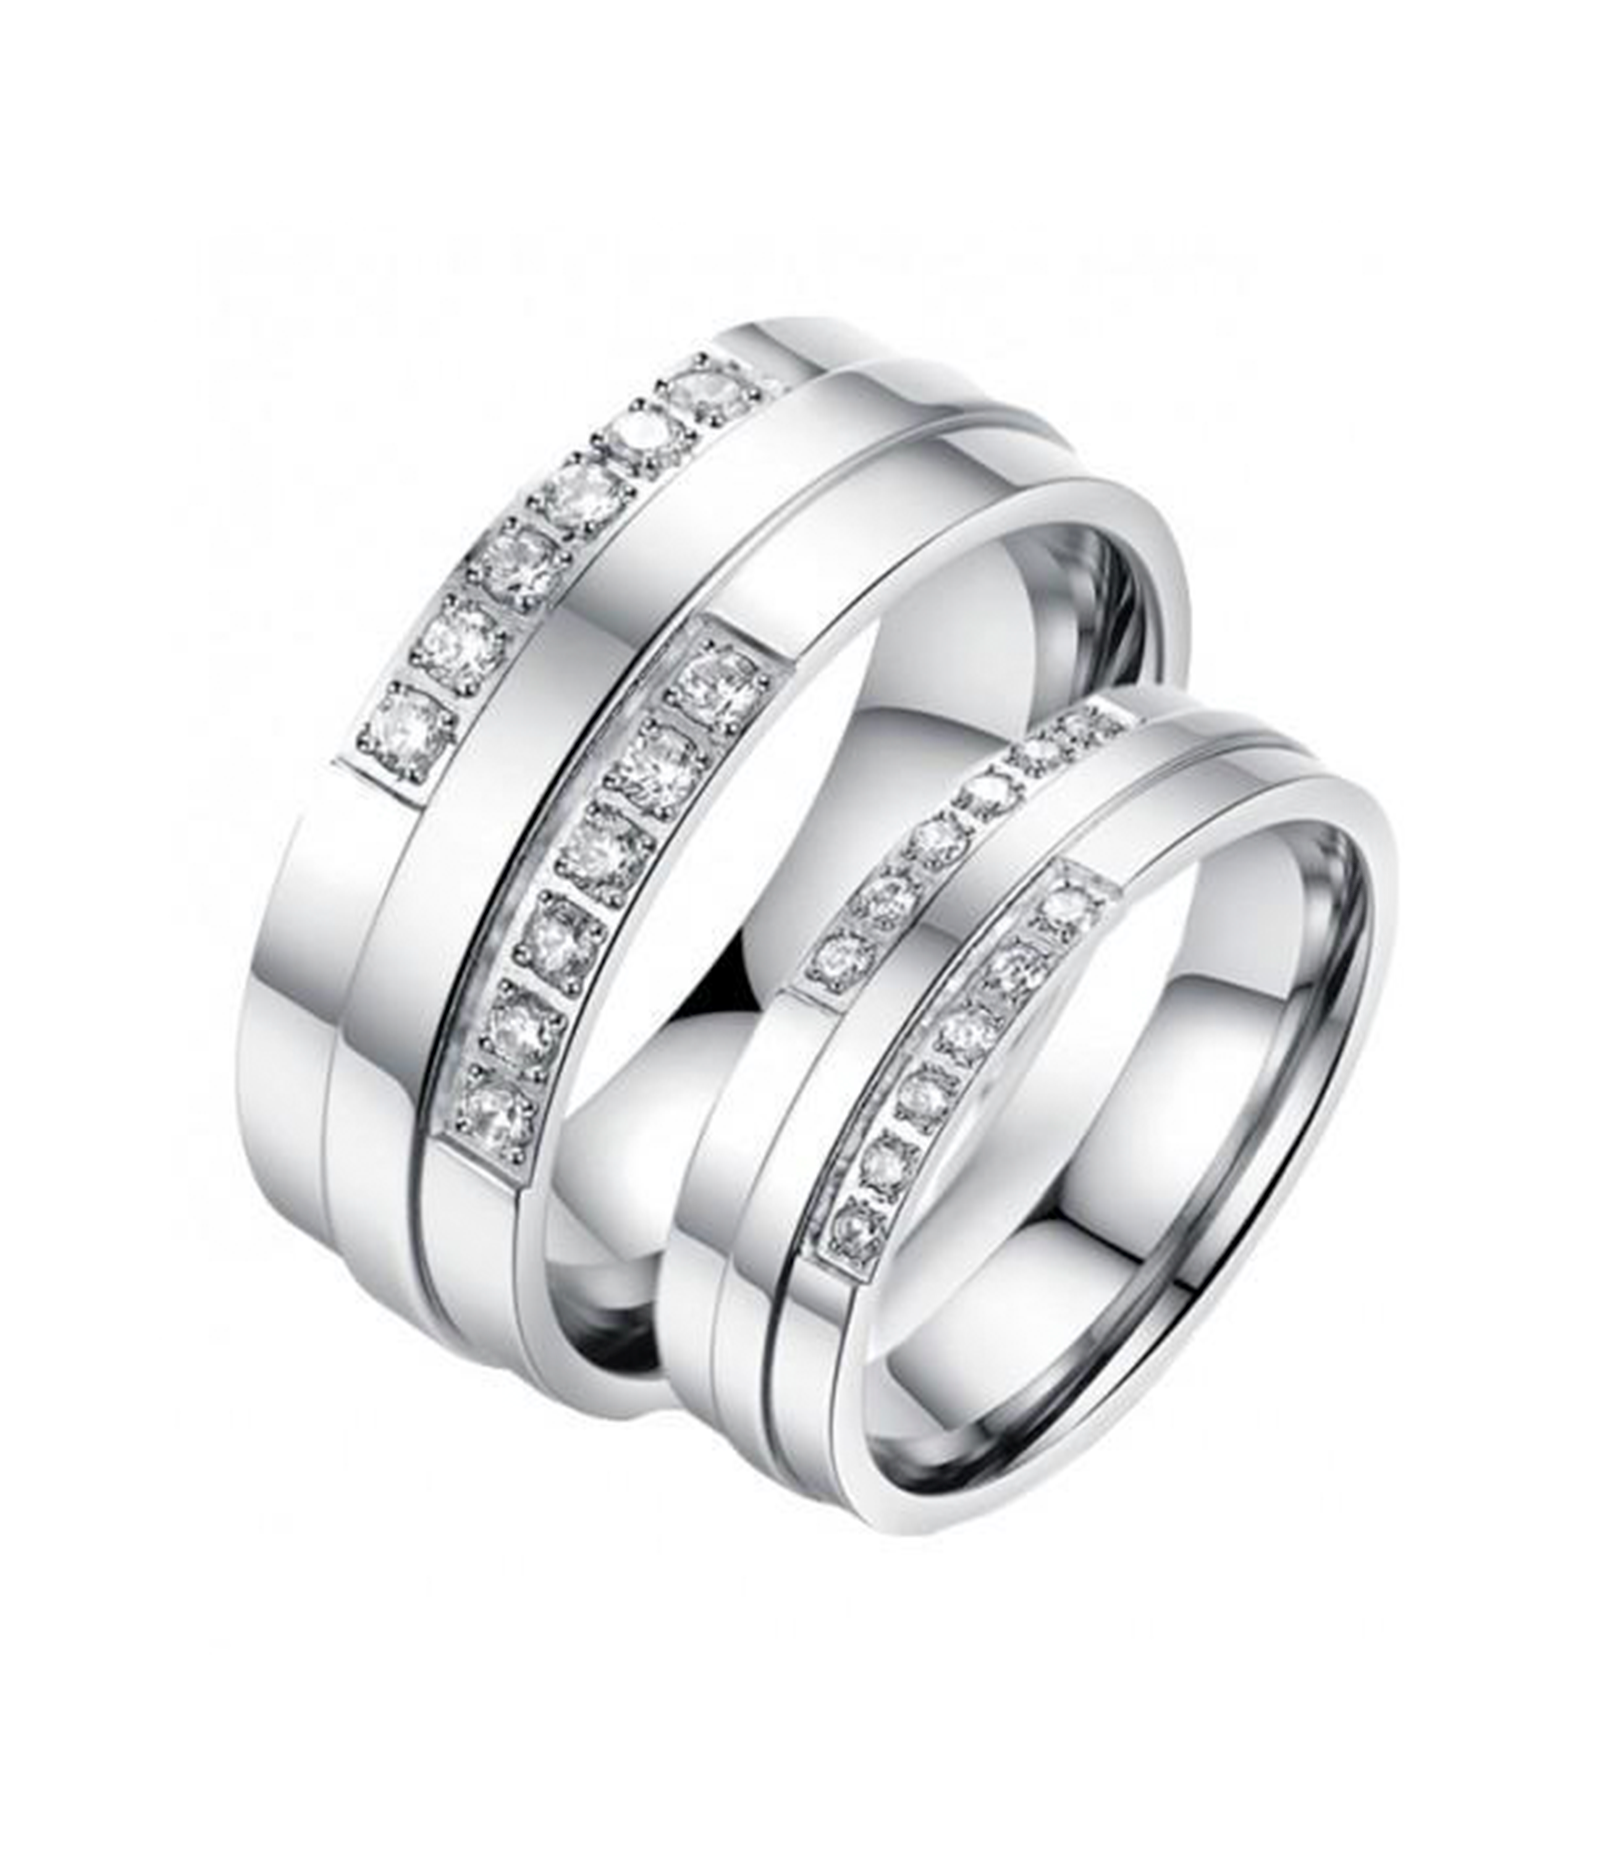 Double Swarovski Inlay Titanium Wedding Rings (Men)